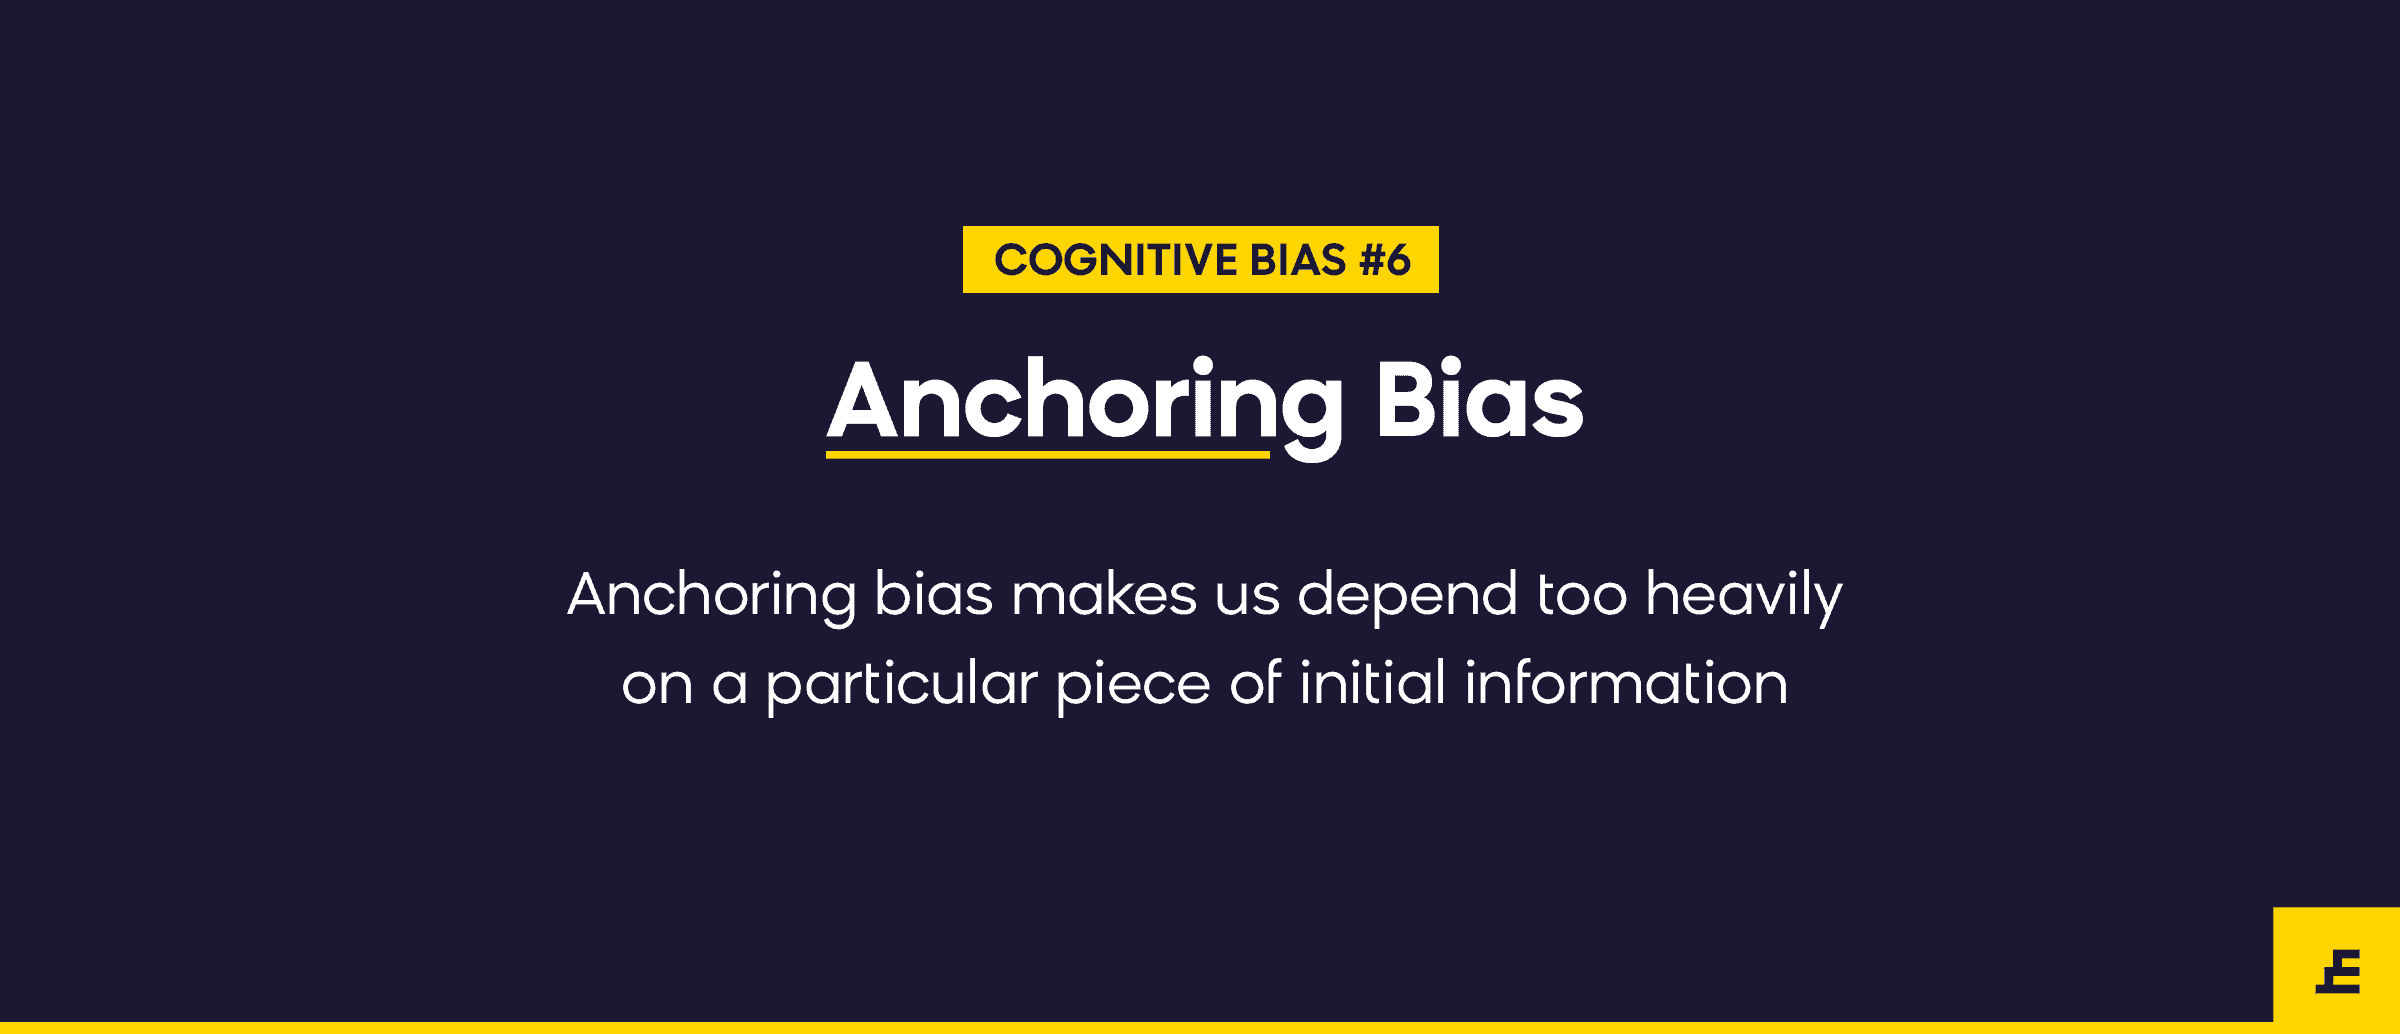 cognitive bias - anchoring bias